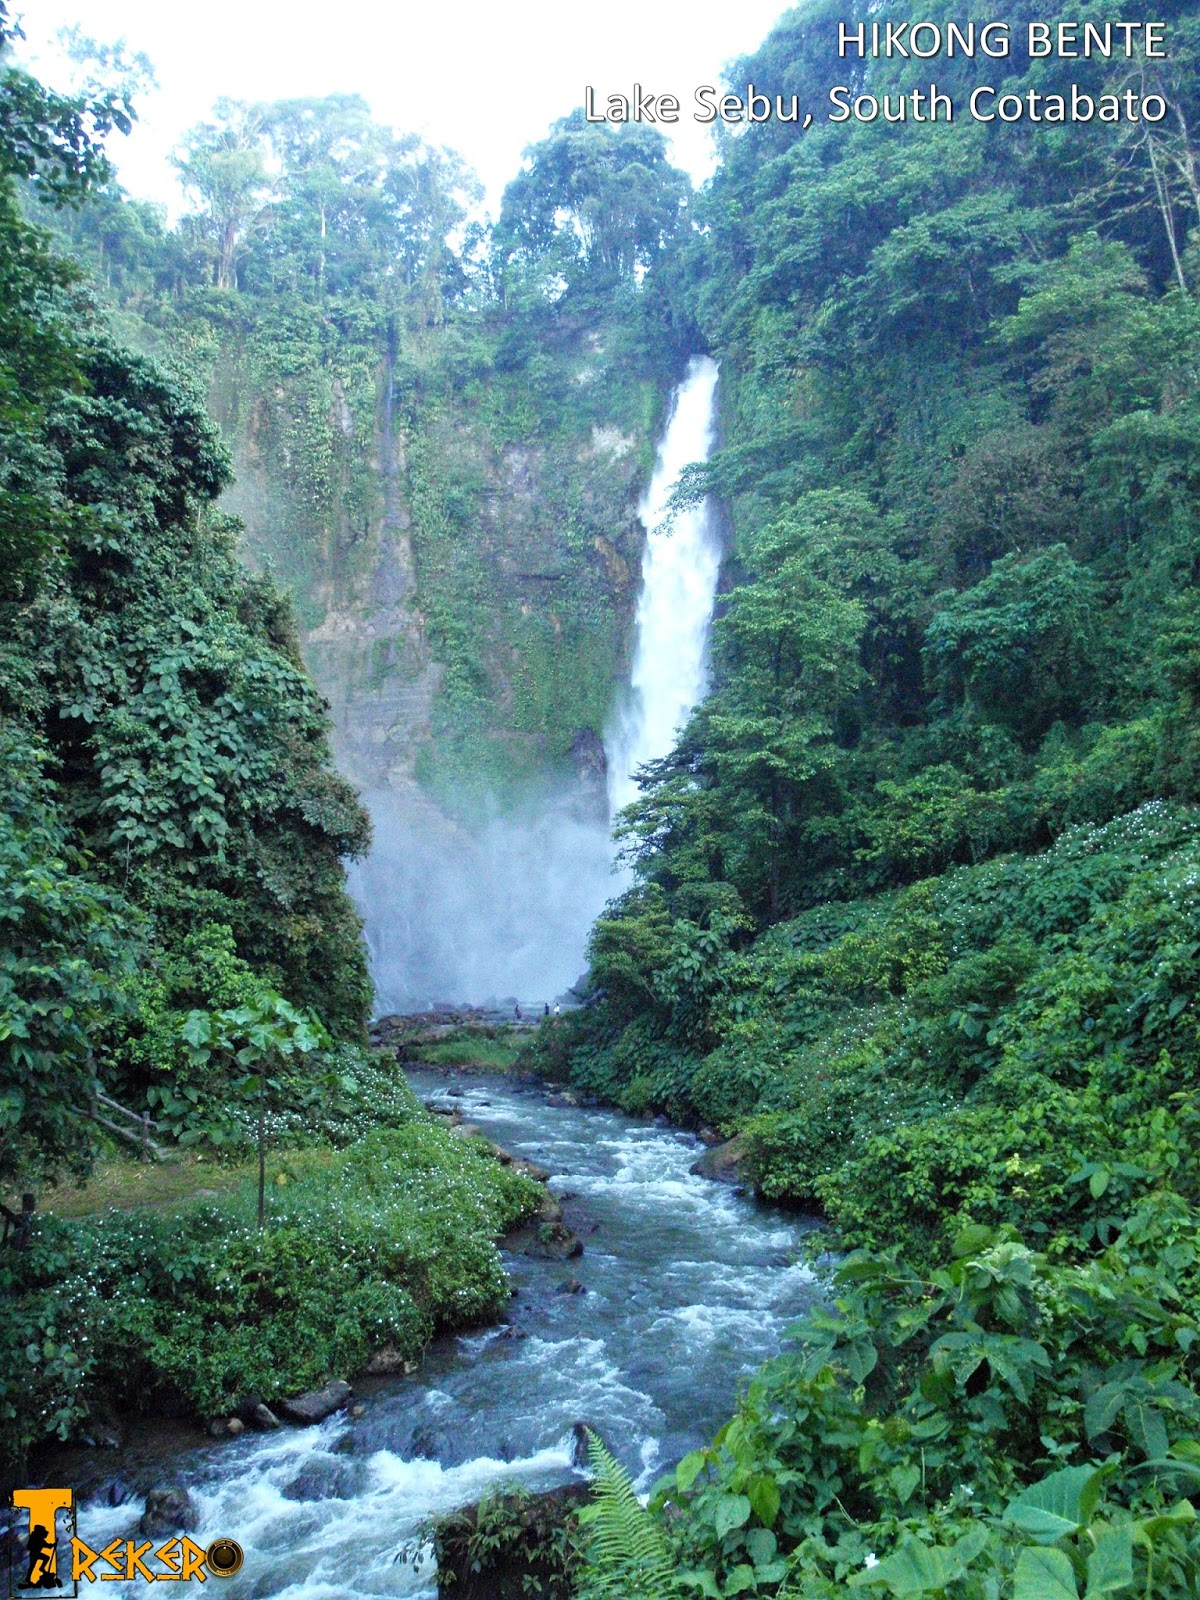 Trekero the 7 falls of lake sebu the complete list it was my shortest stay in lake sebu just overnight the original plan was 3 days and 2 nights in lake sebu with my officemates thecheapjerseys Gallery